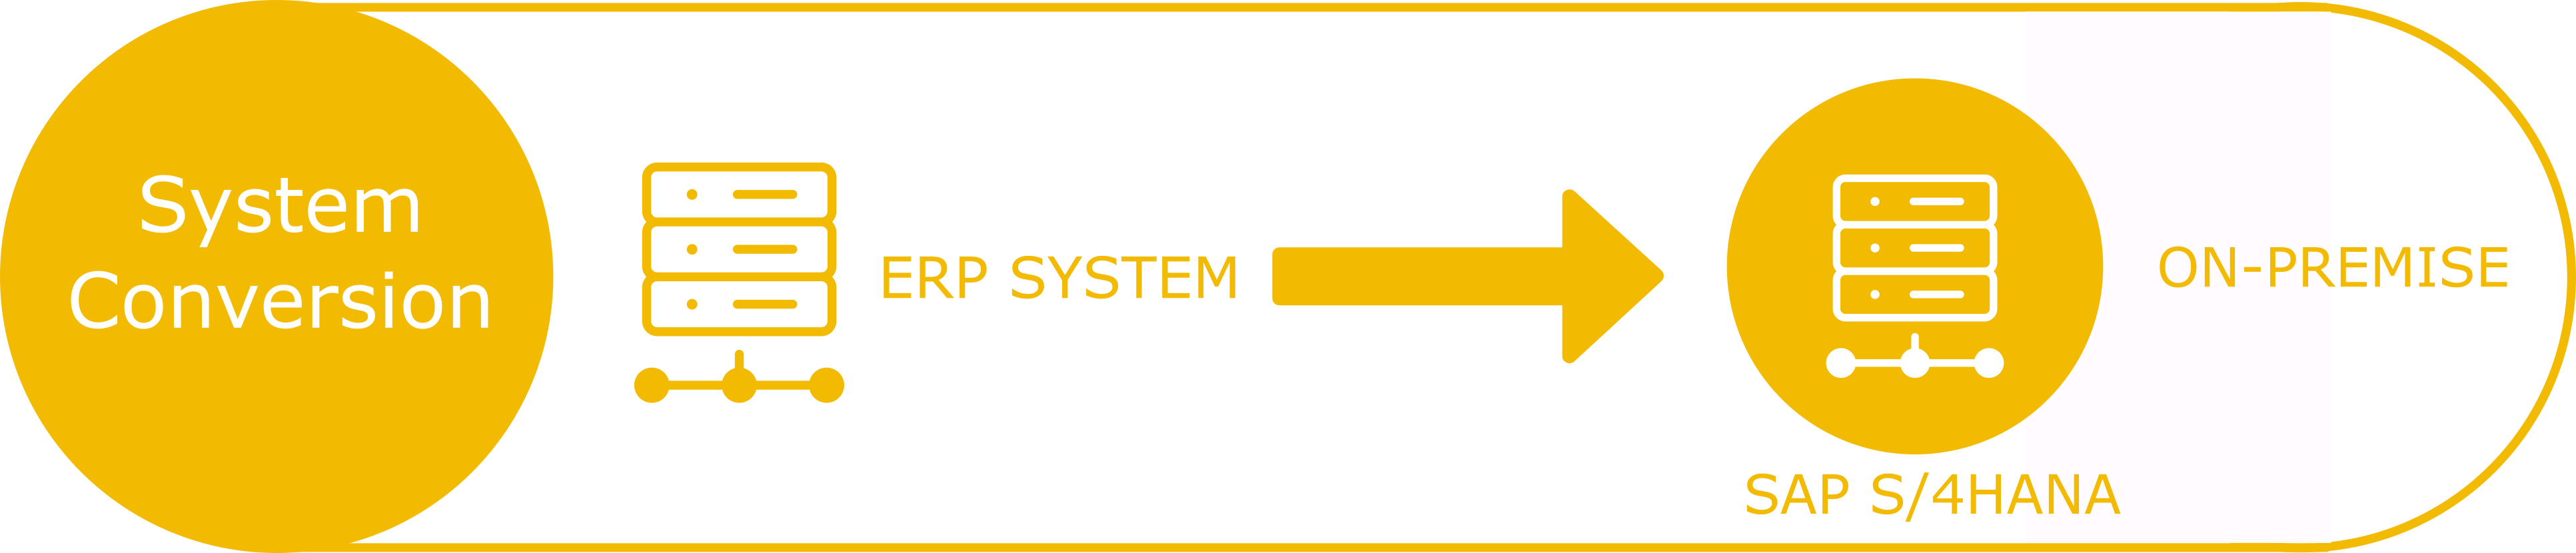 system-conversion.png